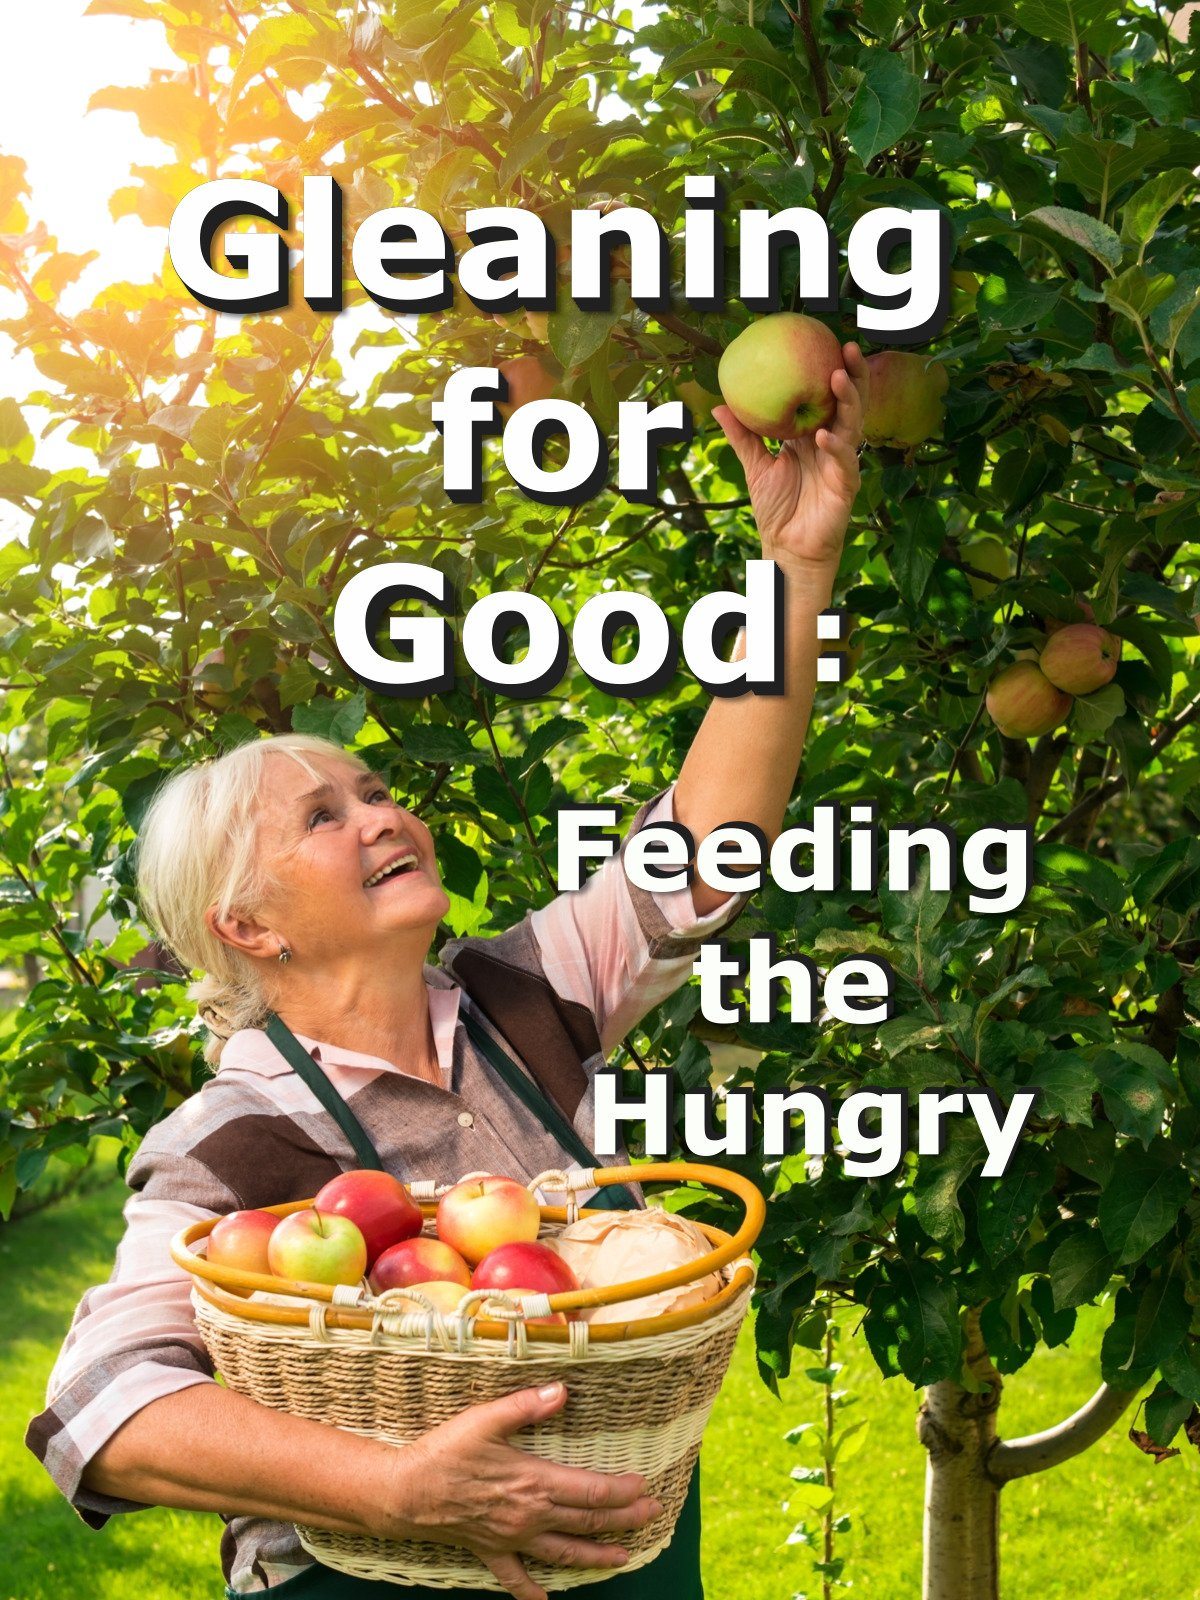 Gleaning for Good: Feeding the Hungry on Amazon Prime Instant Video UK